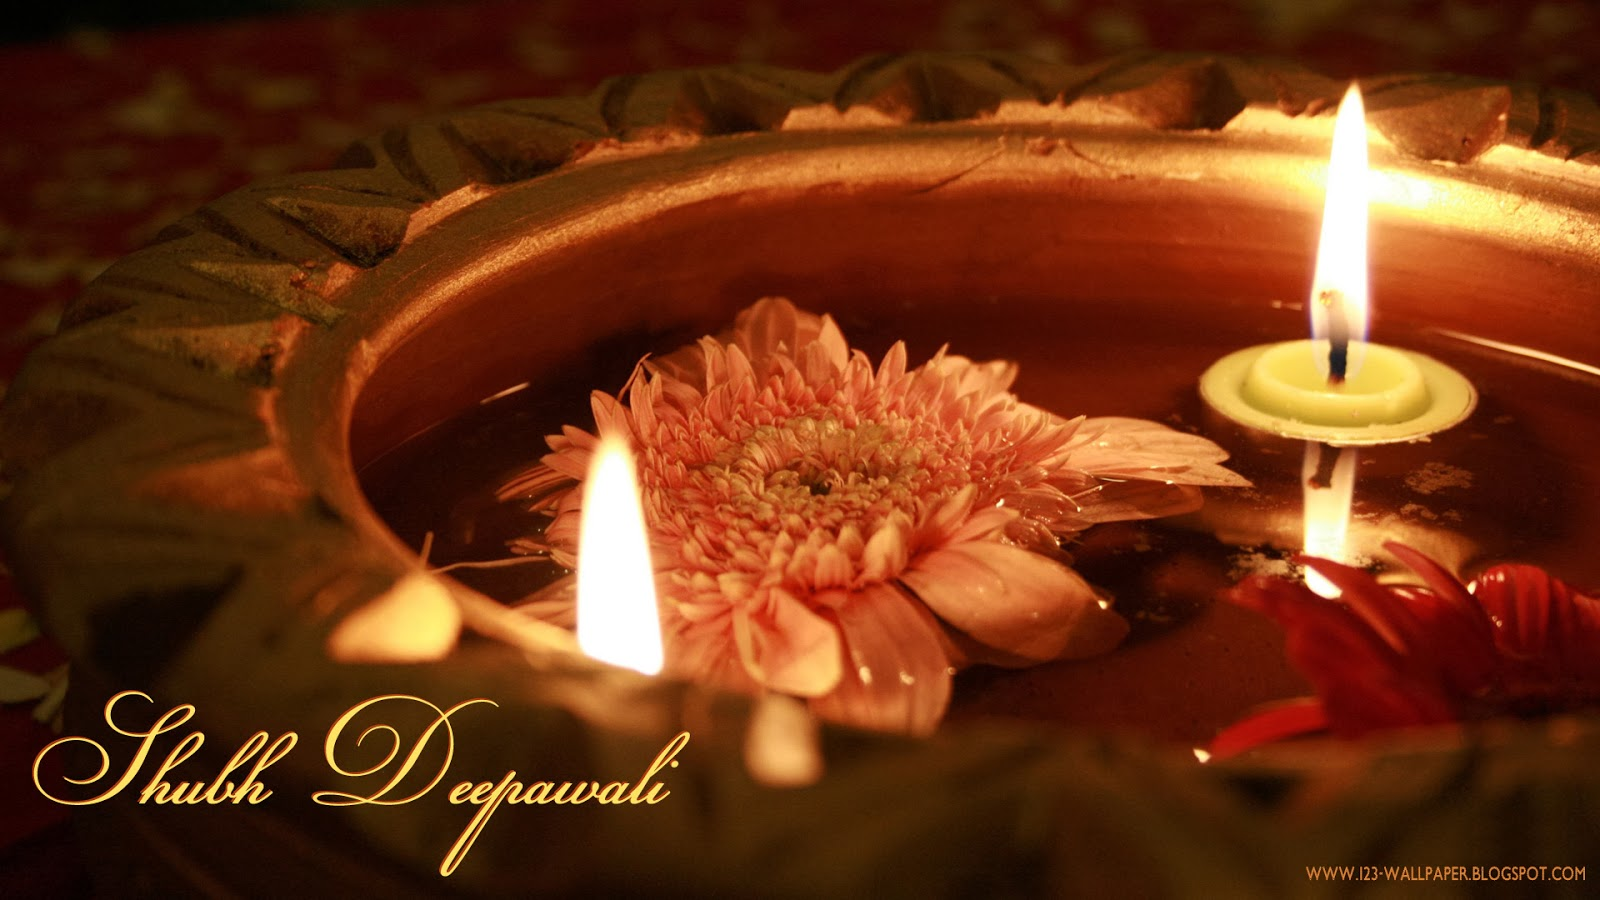 Wallpaper Beautiful Happy Diwali Wallpapers And Greetings For Year 2013